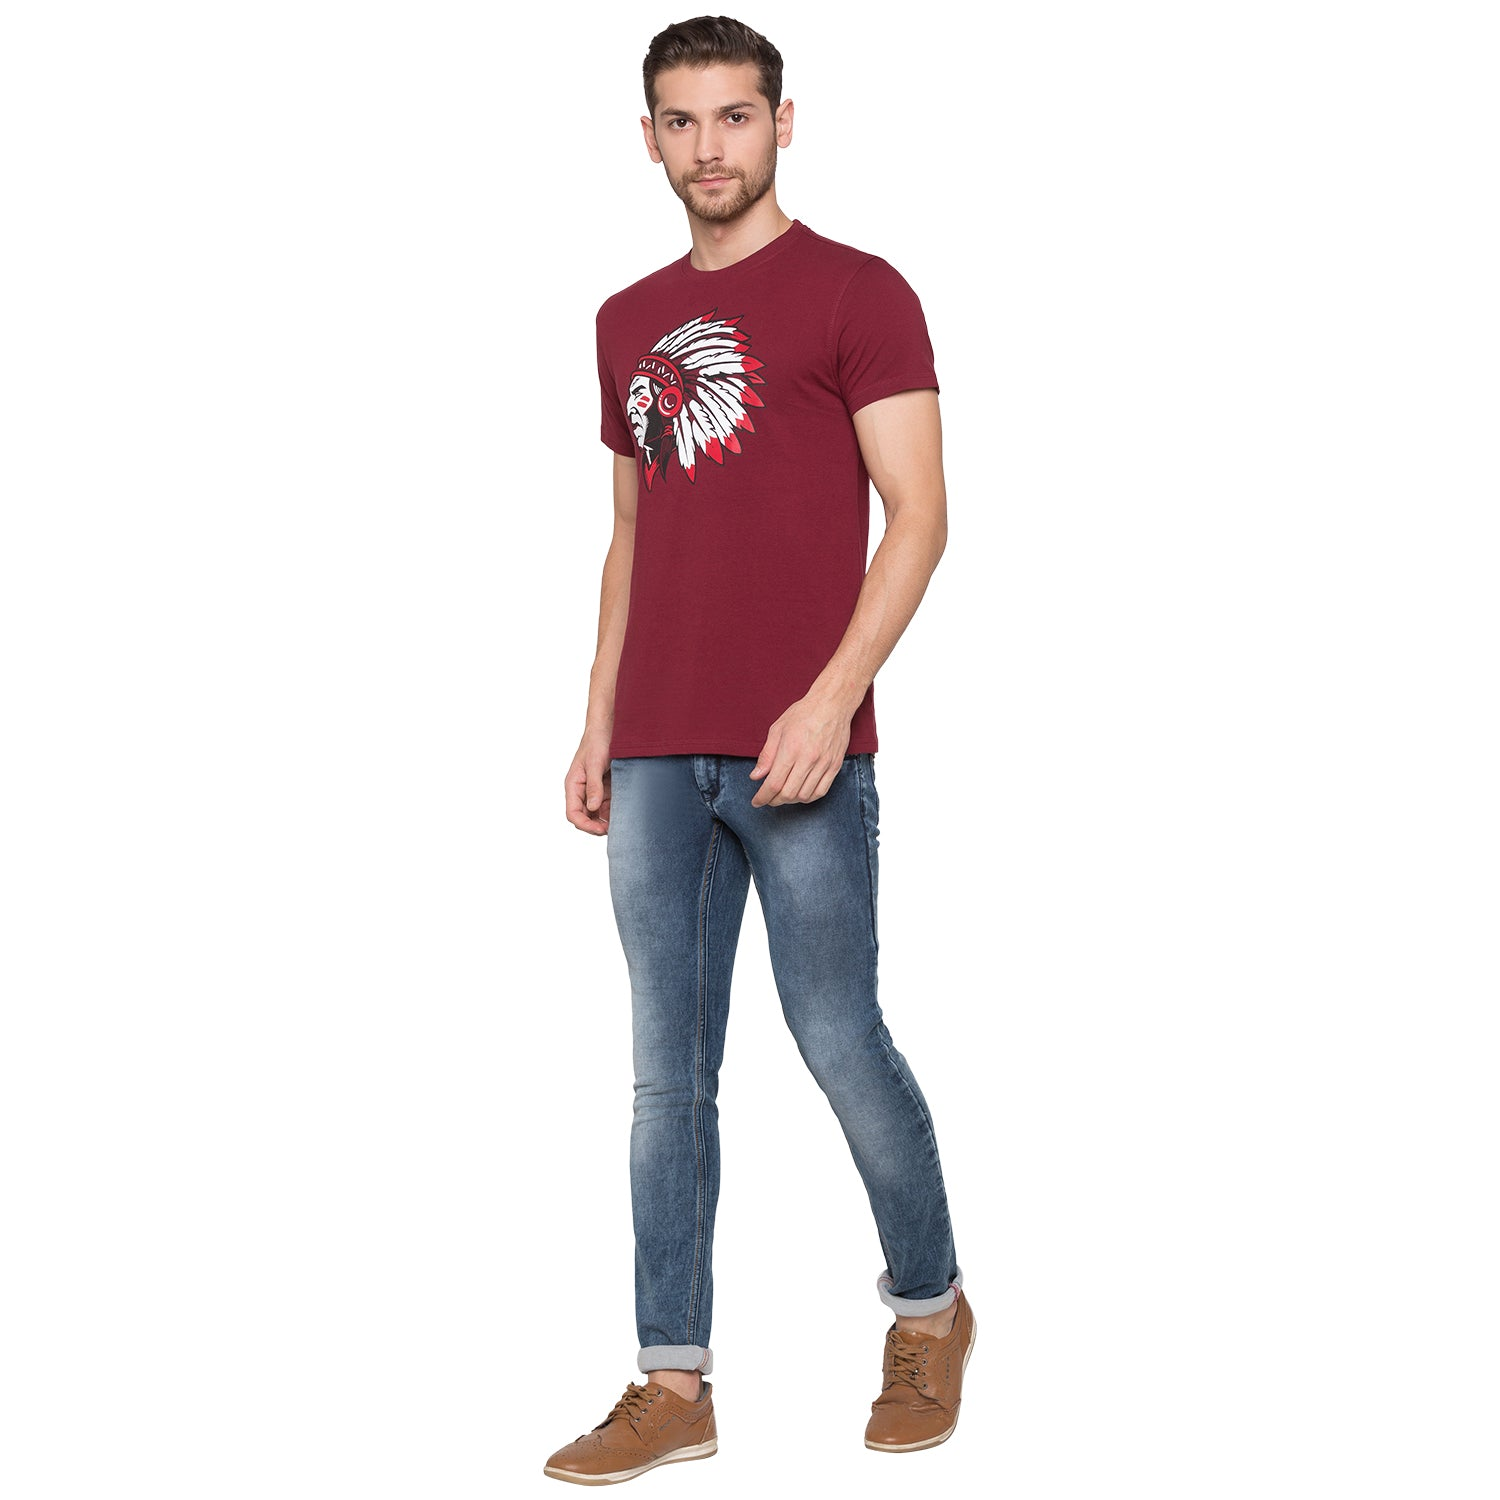 Globus Maroon Graphic T-Shirt4